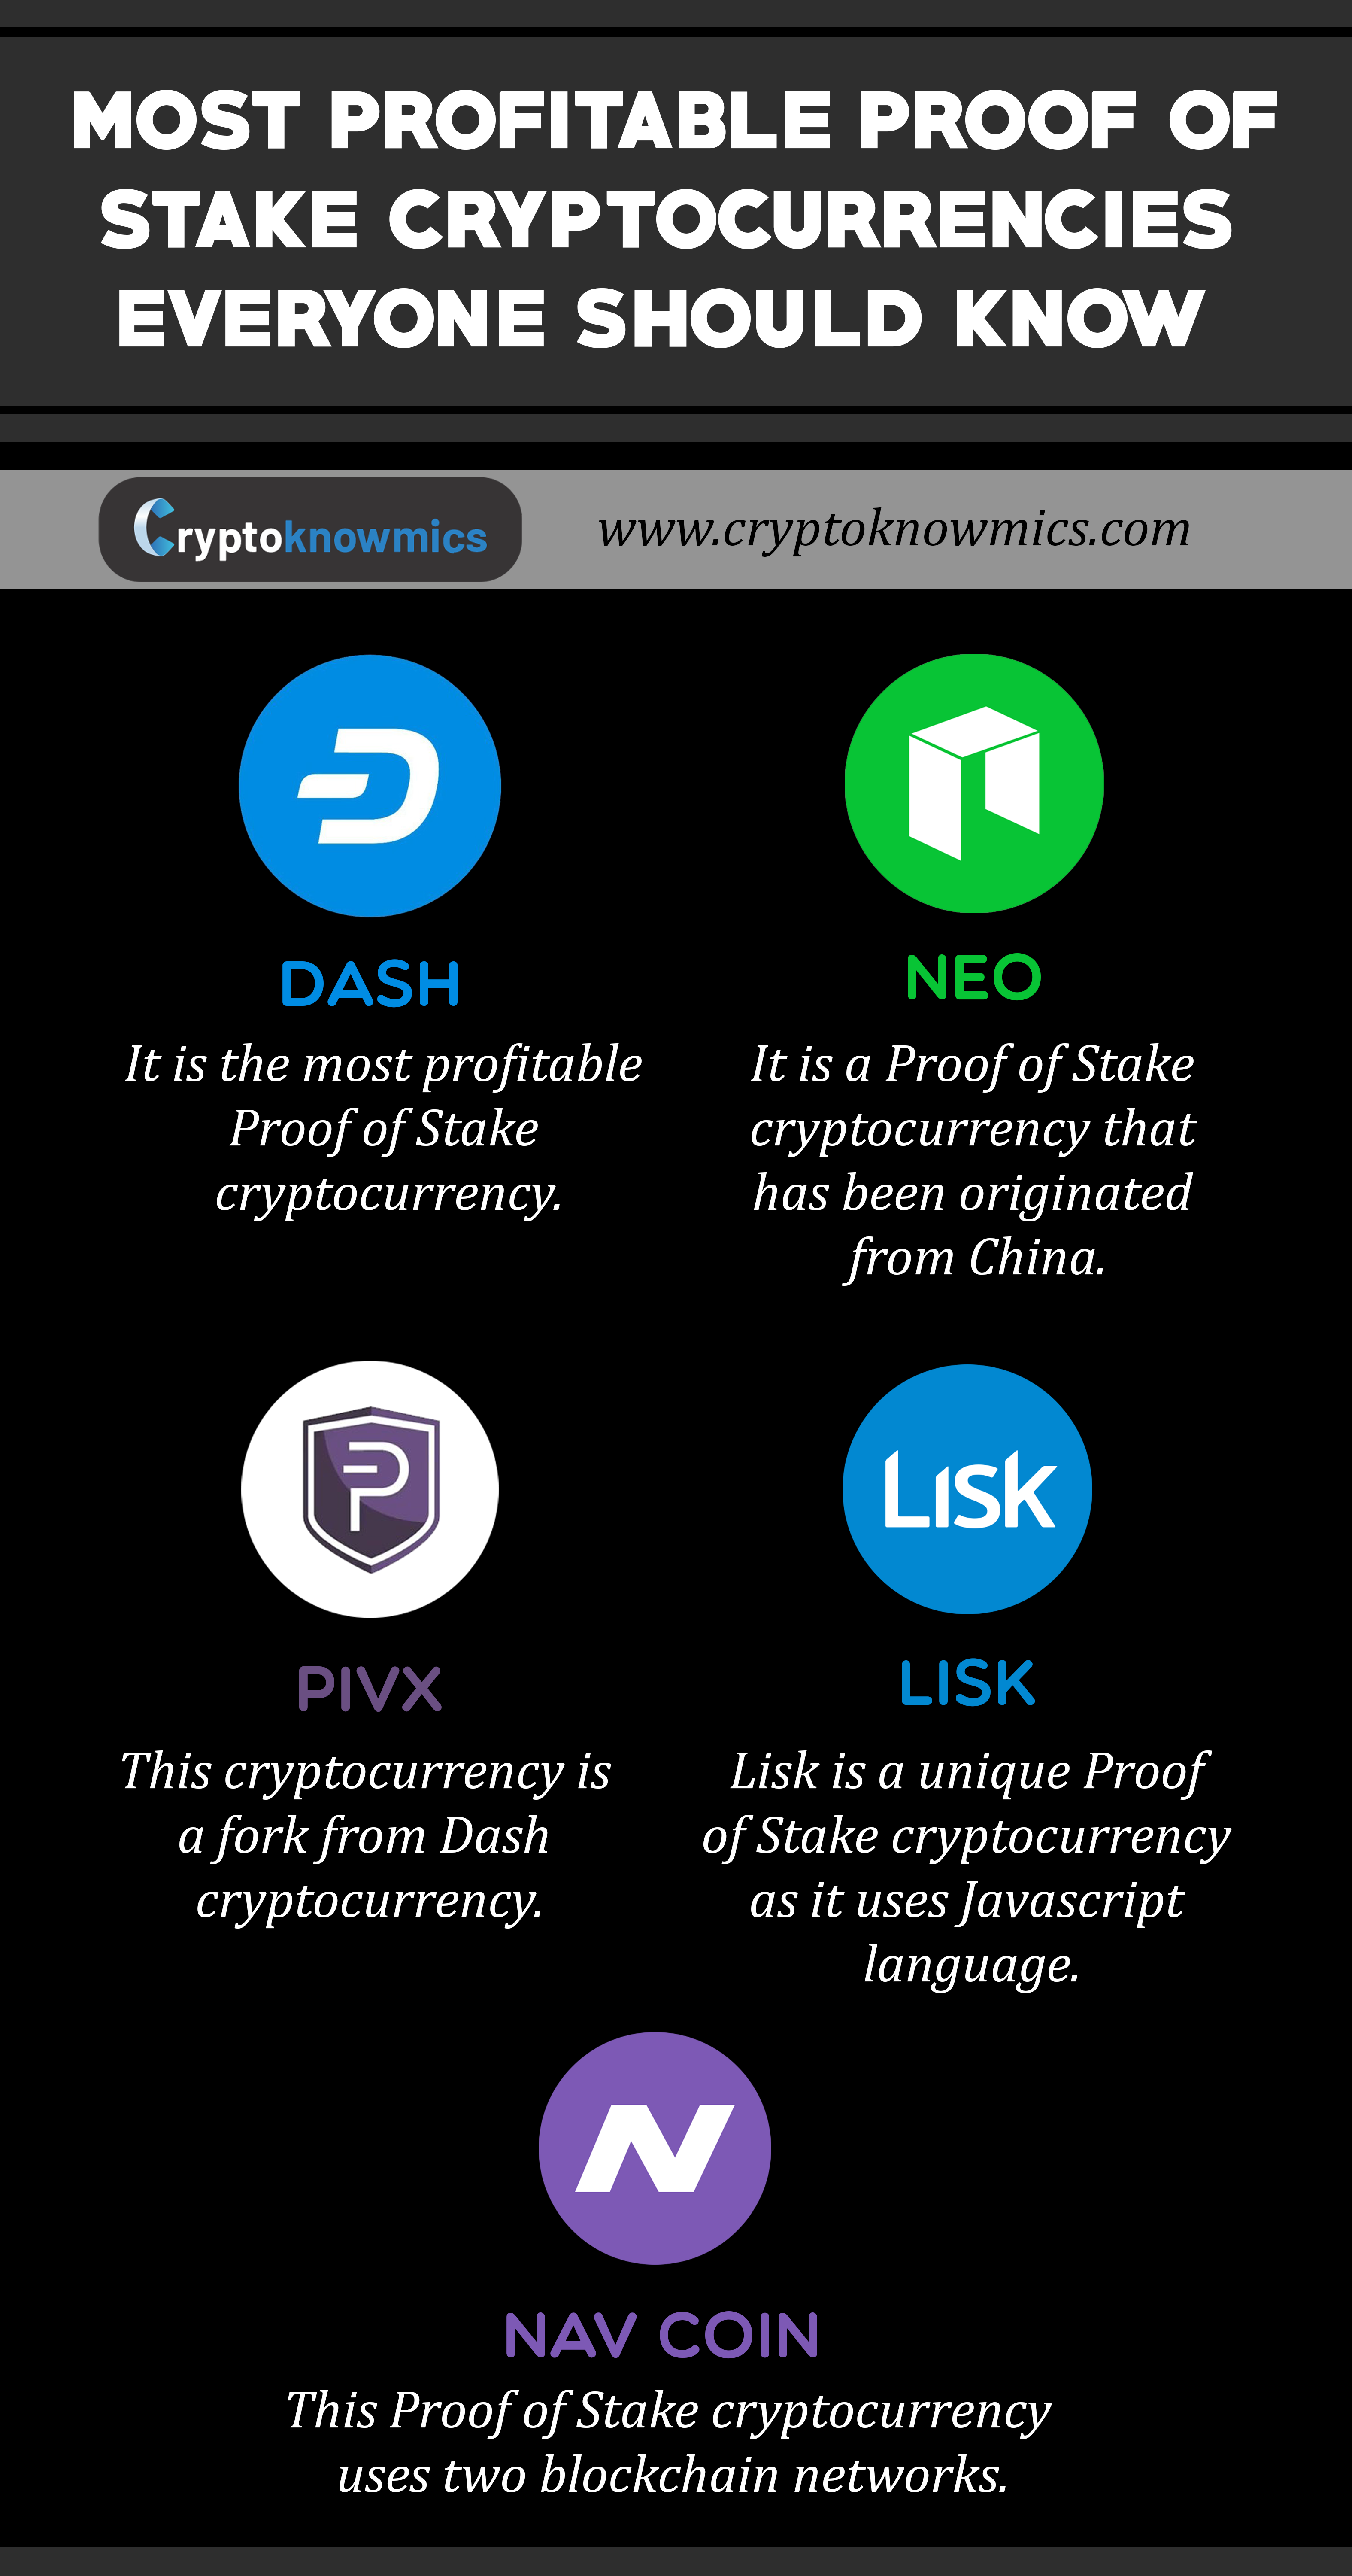 Most Profitable Proof of Stake Cryptocurrencies